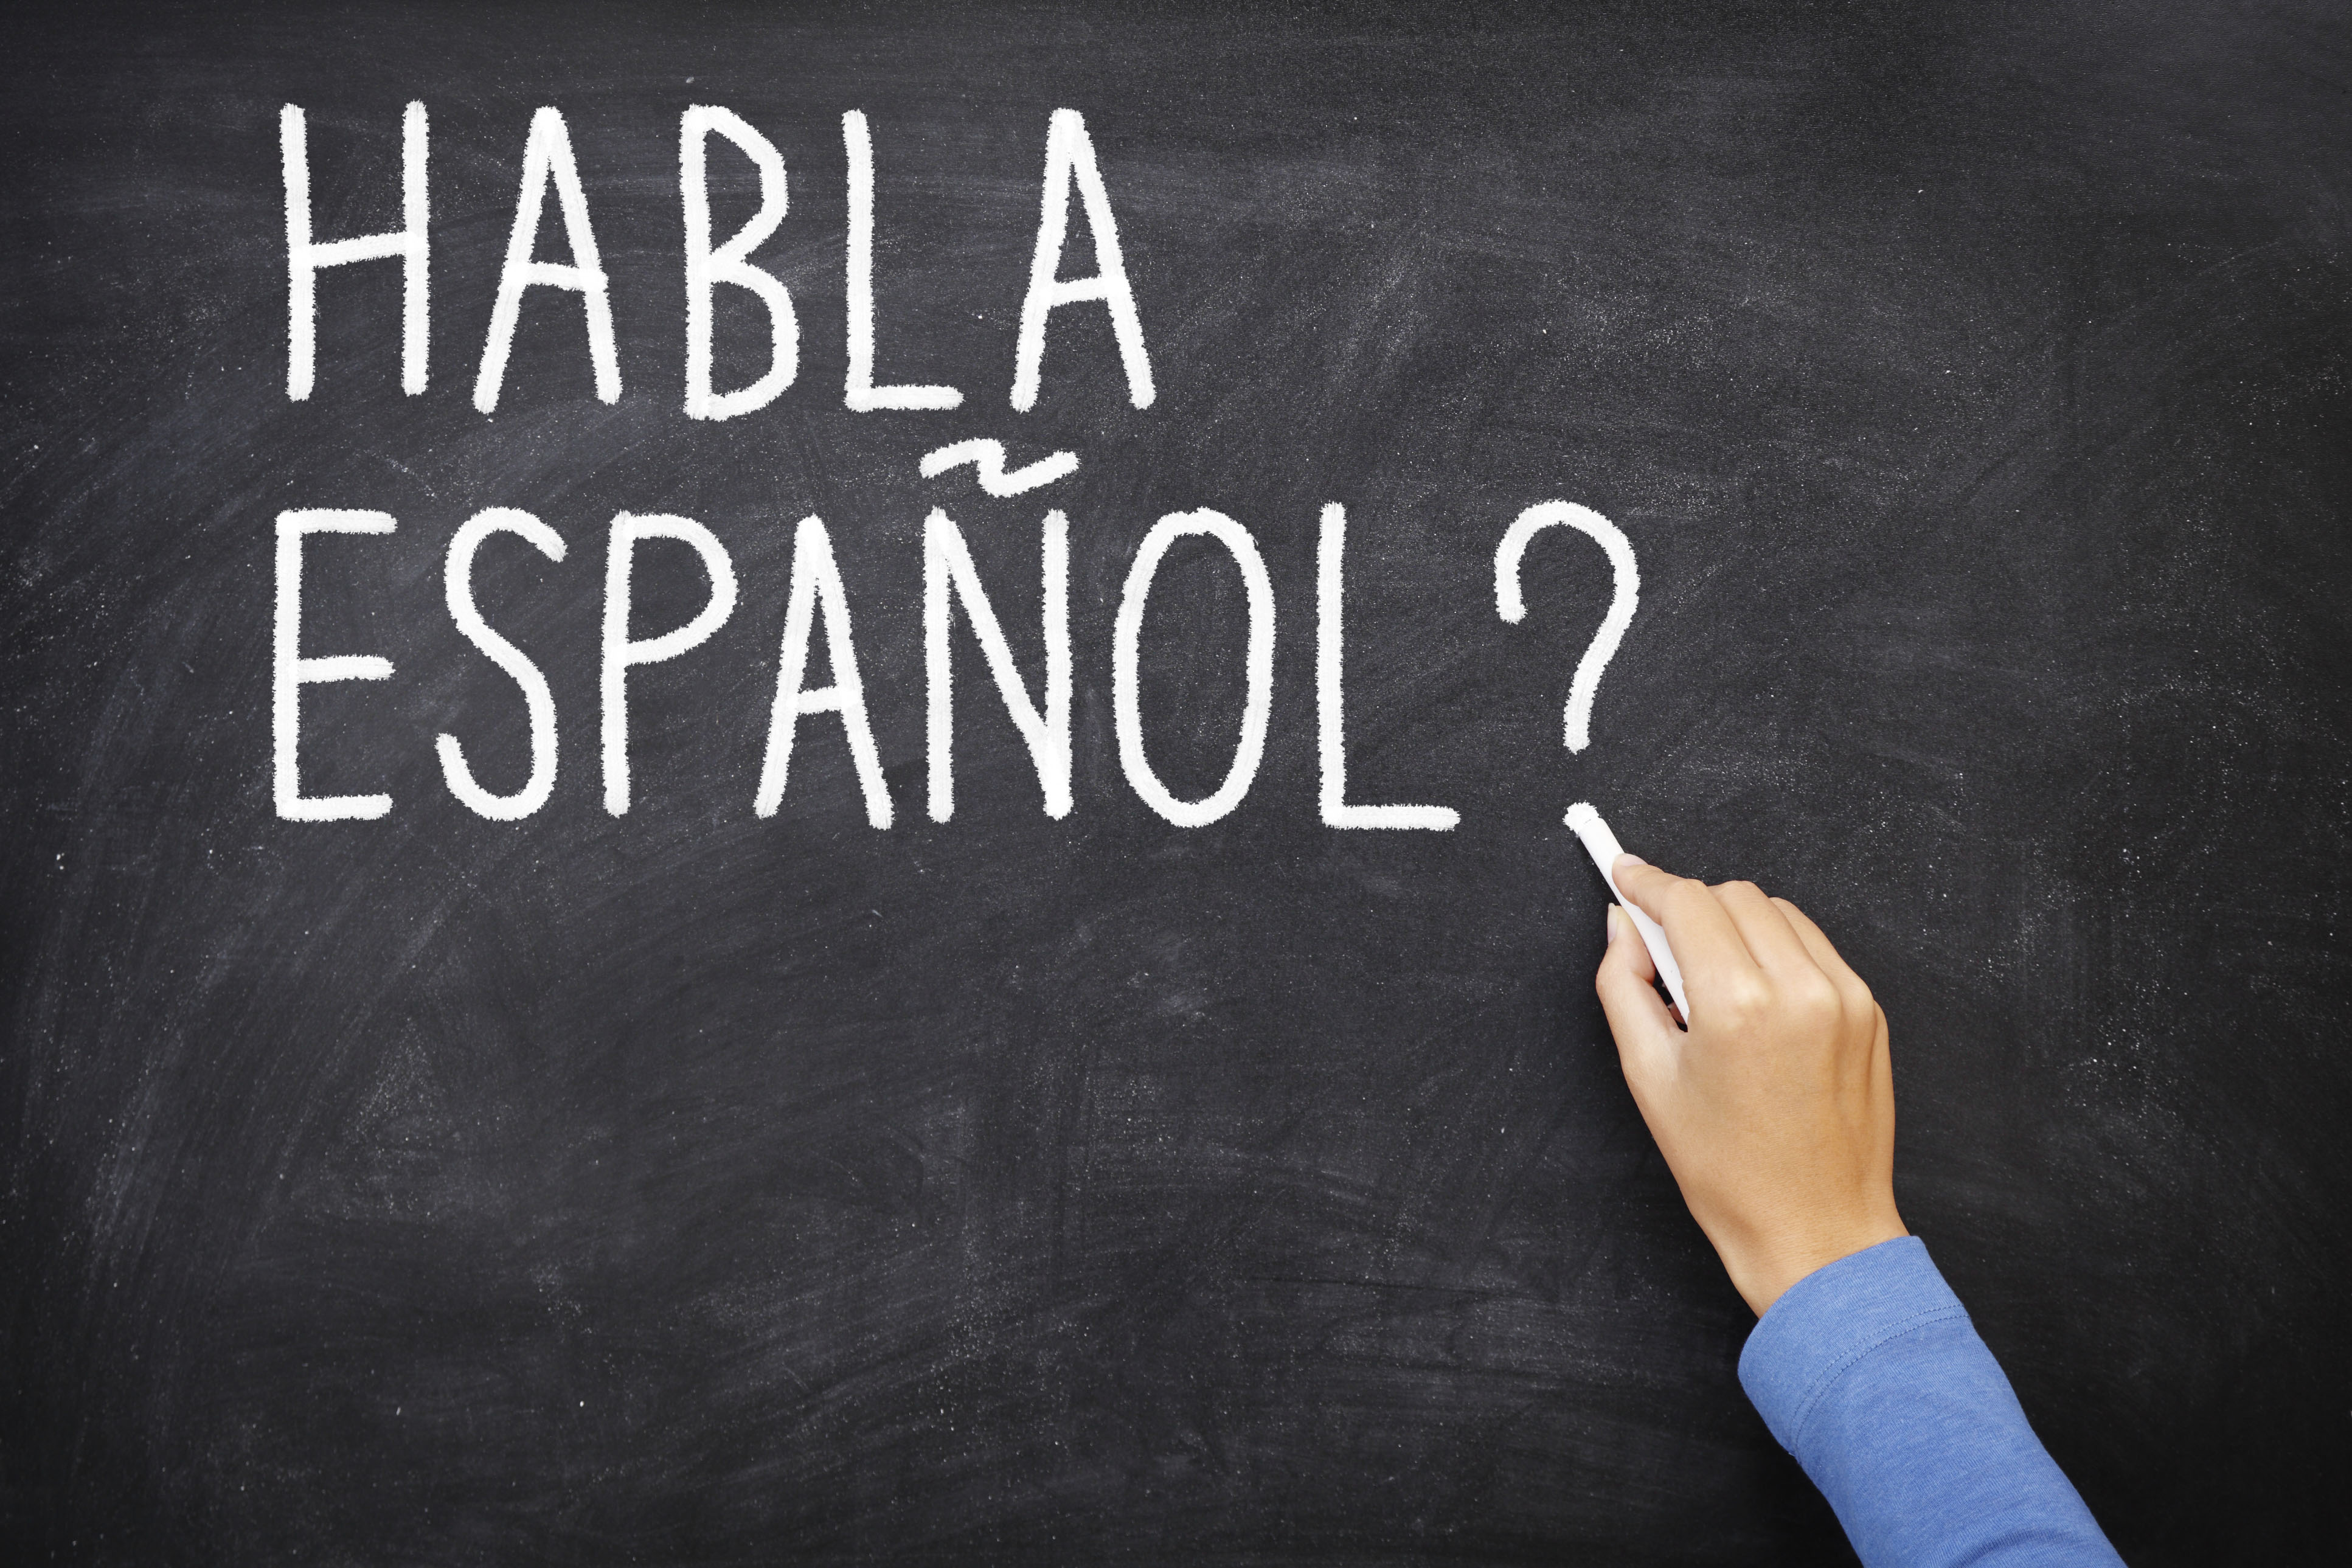 What online apps are available to help someone learn how to speak Spanish?